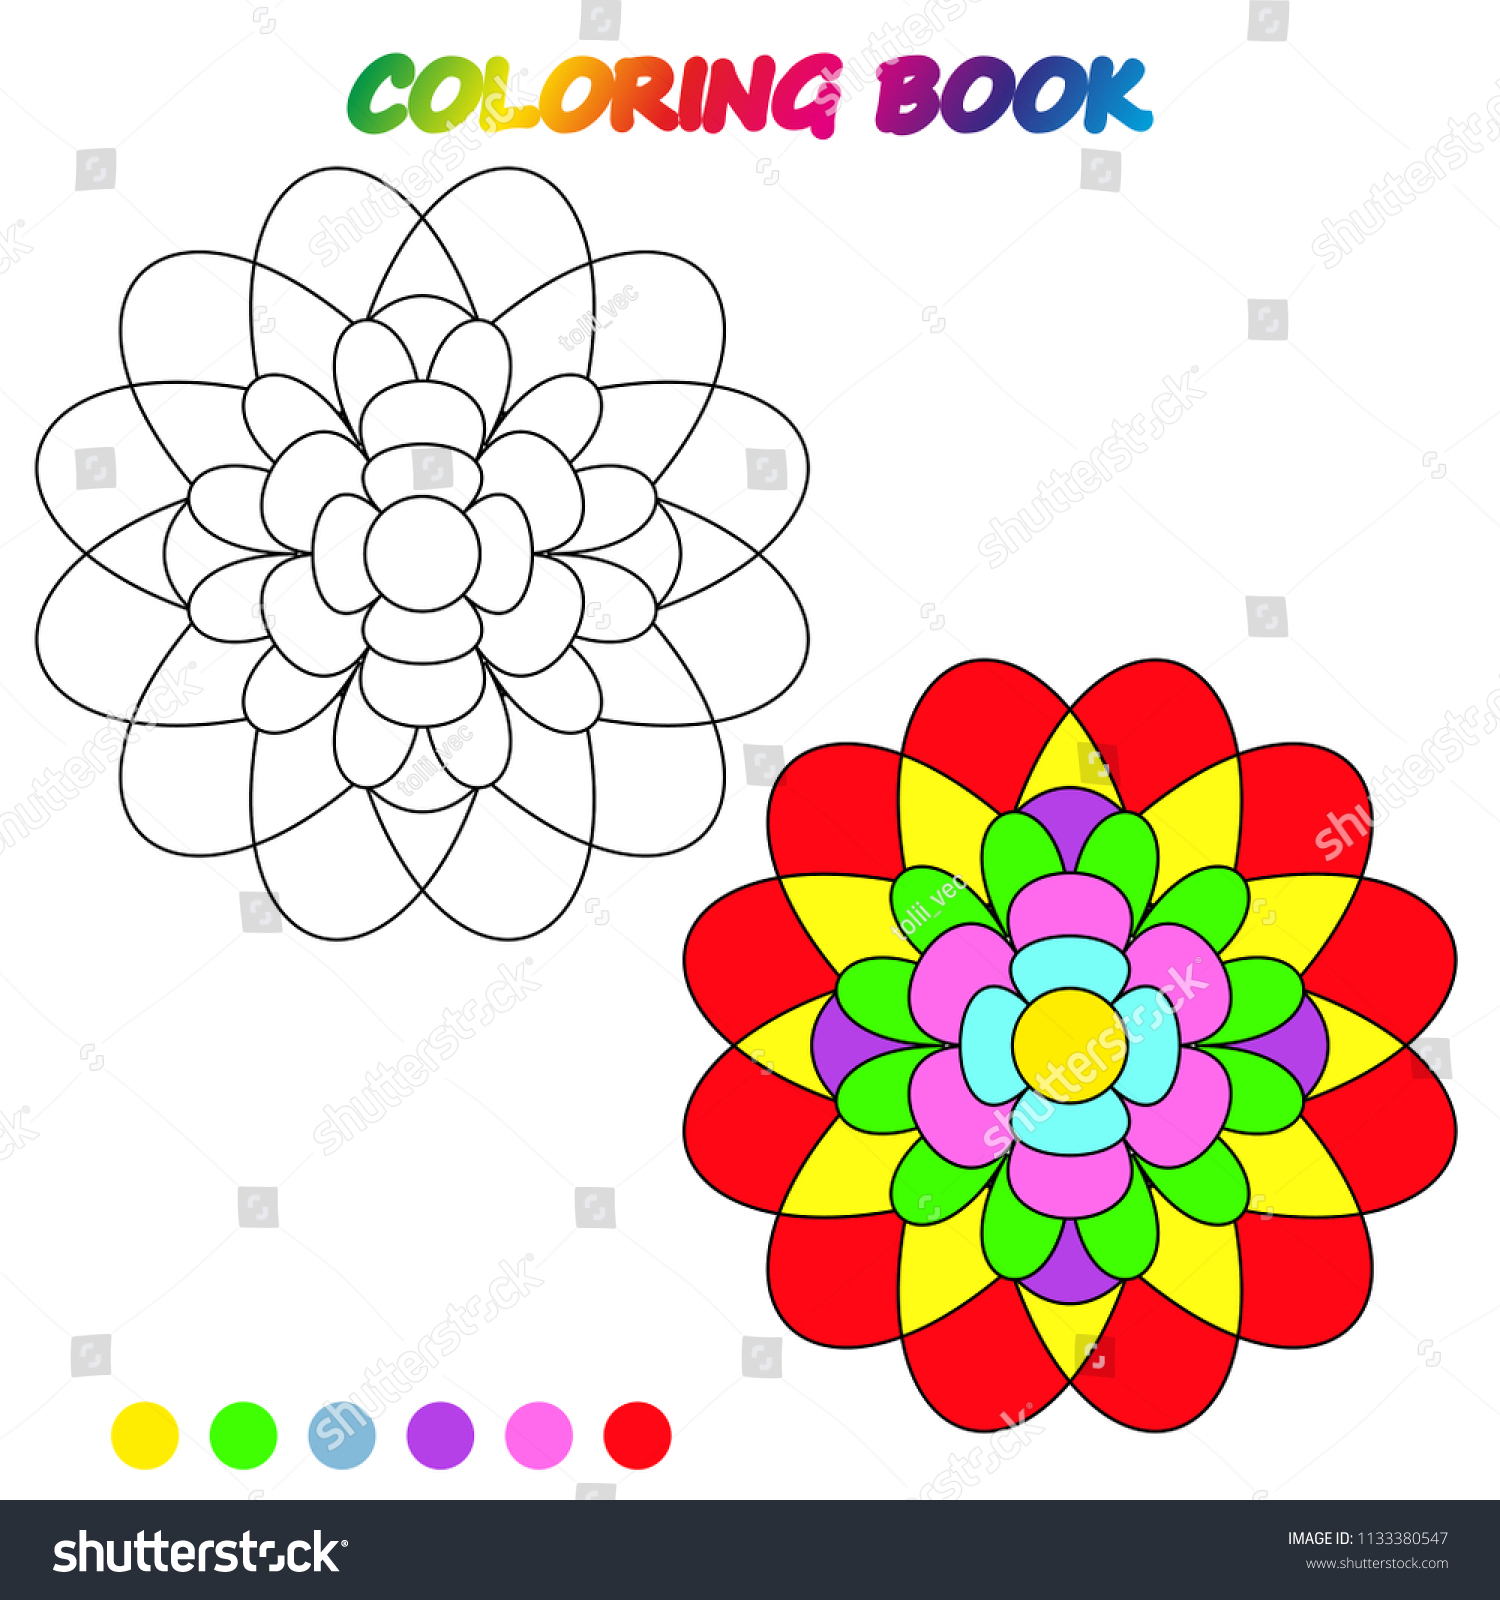 Flower Coloring Page Worksheet Game Kids Stock Photo (Photo, Vector ...